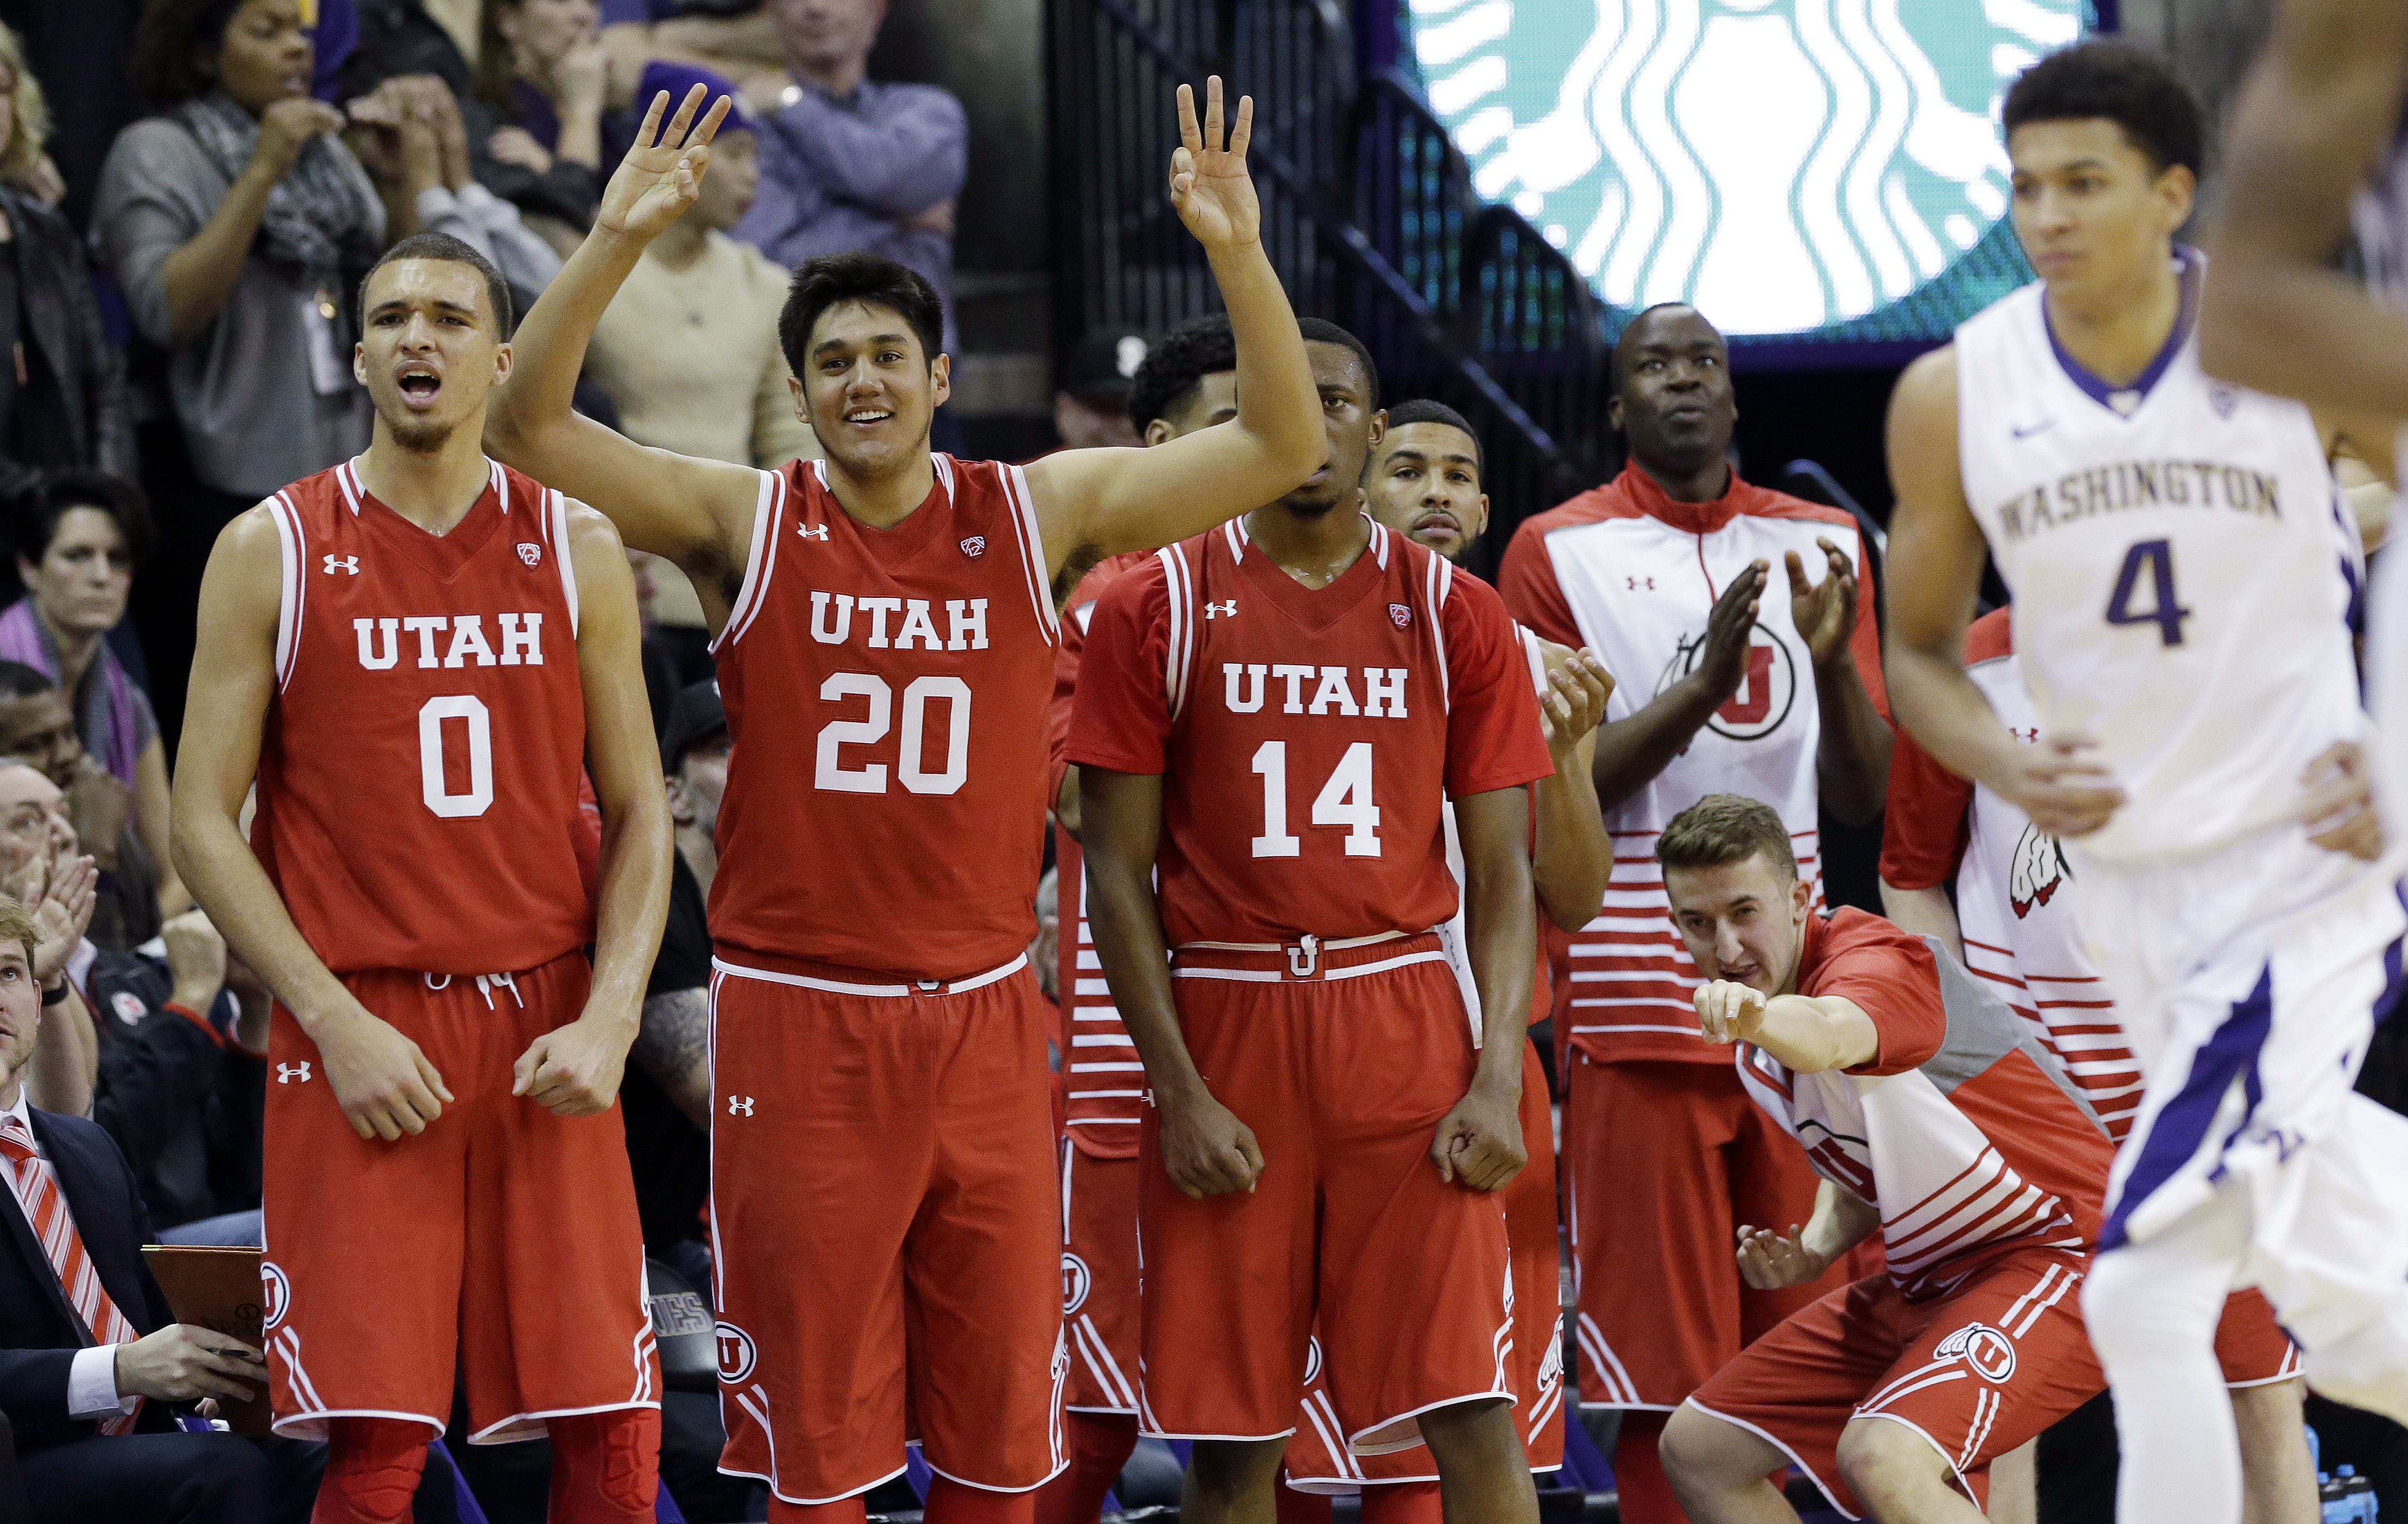 Players on Utah's bench cheer a 3-point shot late in the second half of an NCAA college basketball game against Washington, Sunday, Jan. 24, 2016, in Seattle. Utah won in overtime, 80-75. (AP Photo/Elaine Thompson)